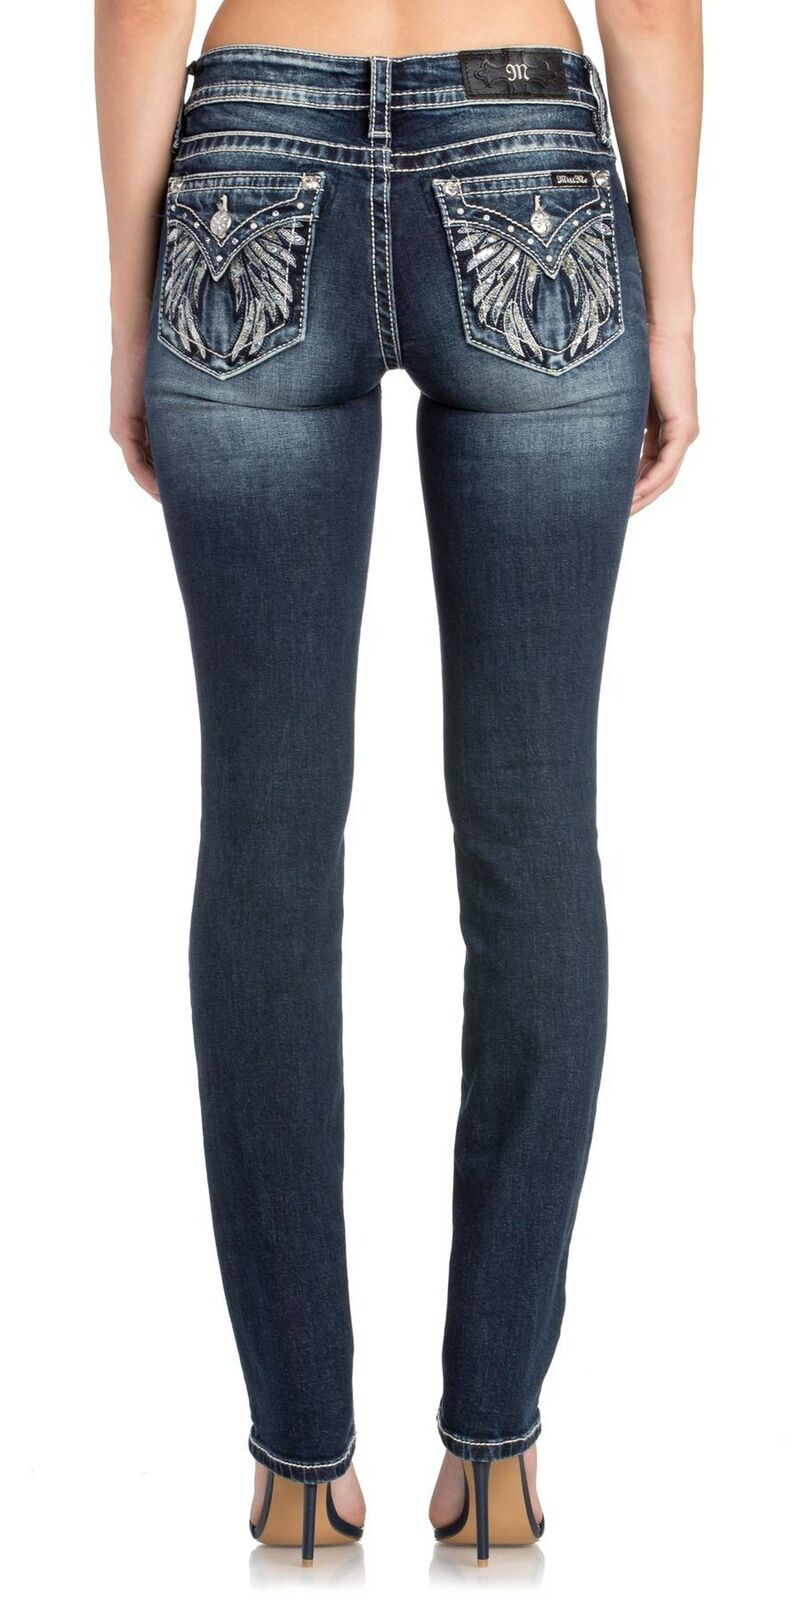 Miss Me Women's Mid-Rise Straight Leg Jeans, Dark bluee 27